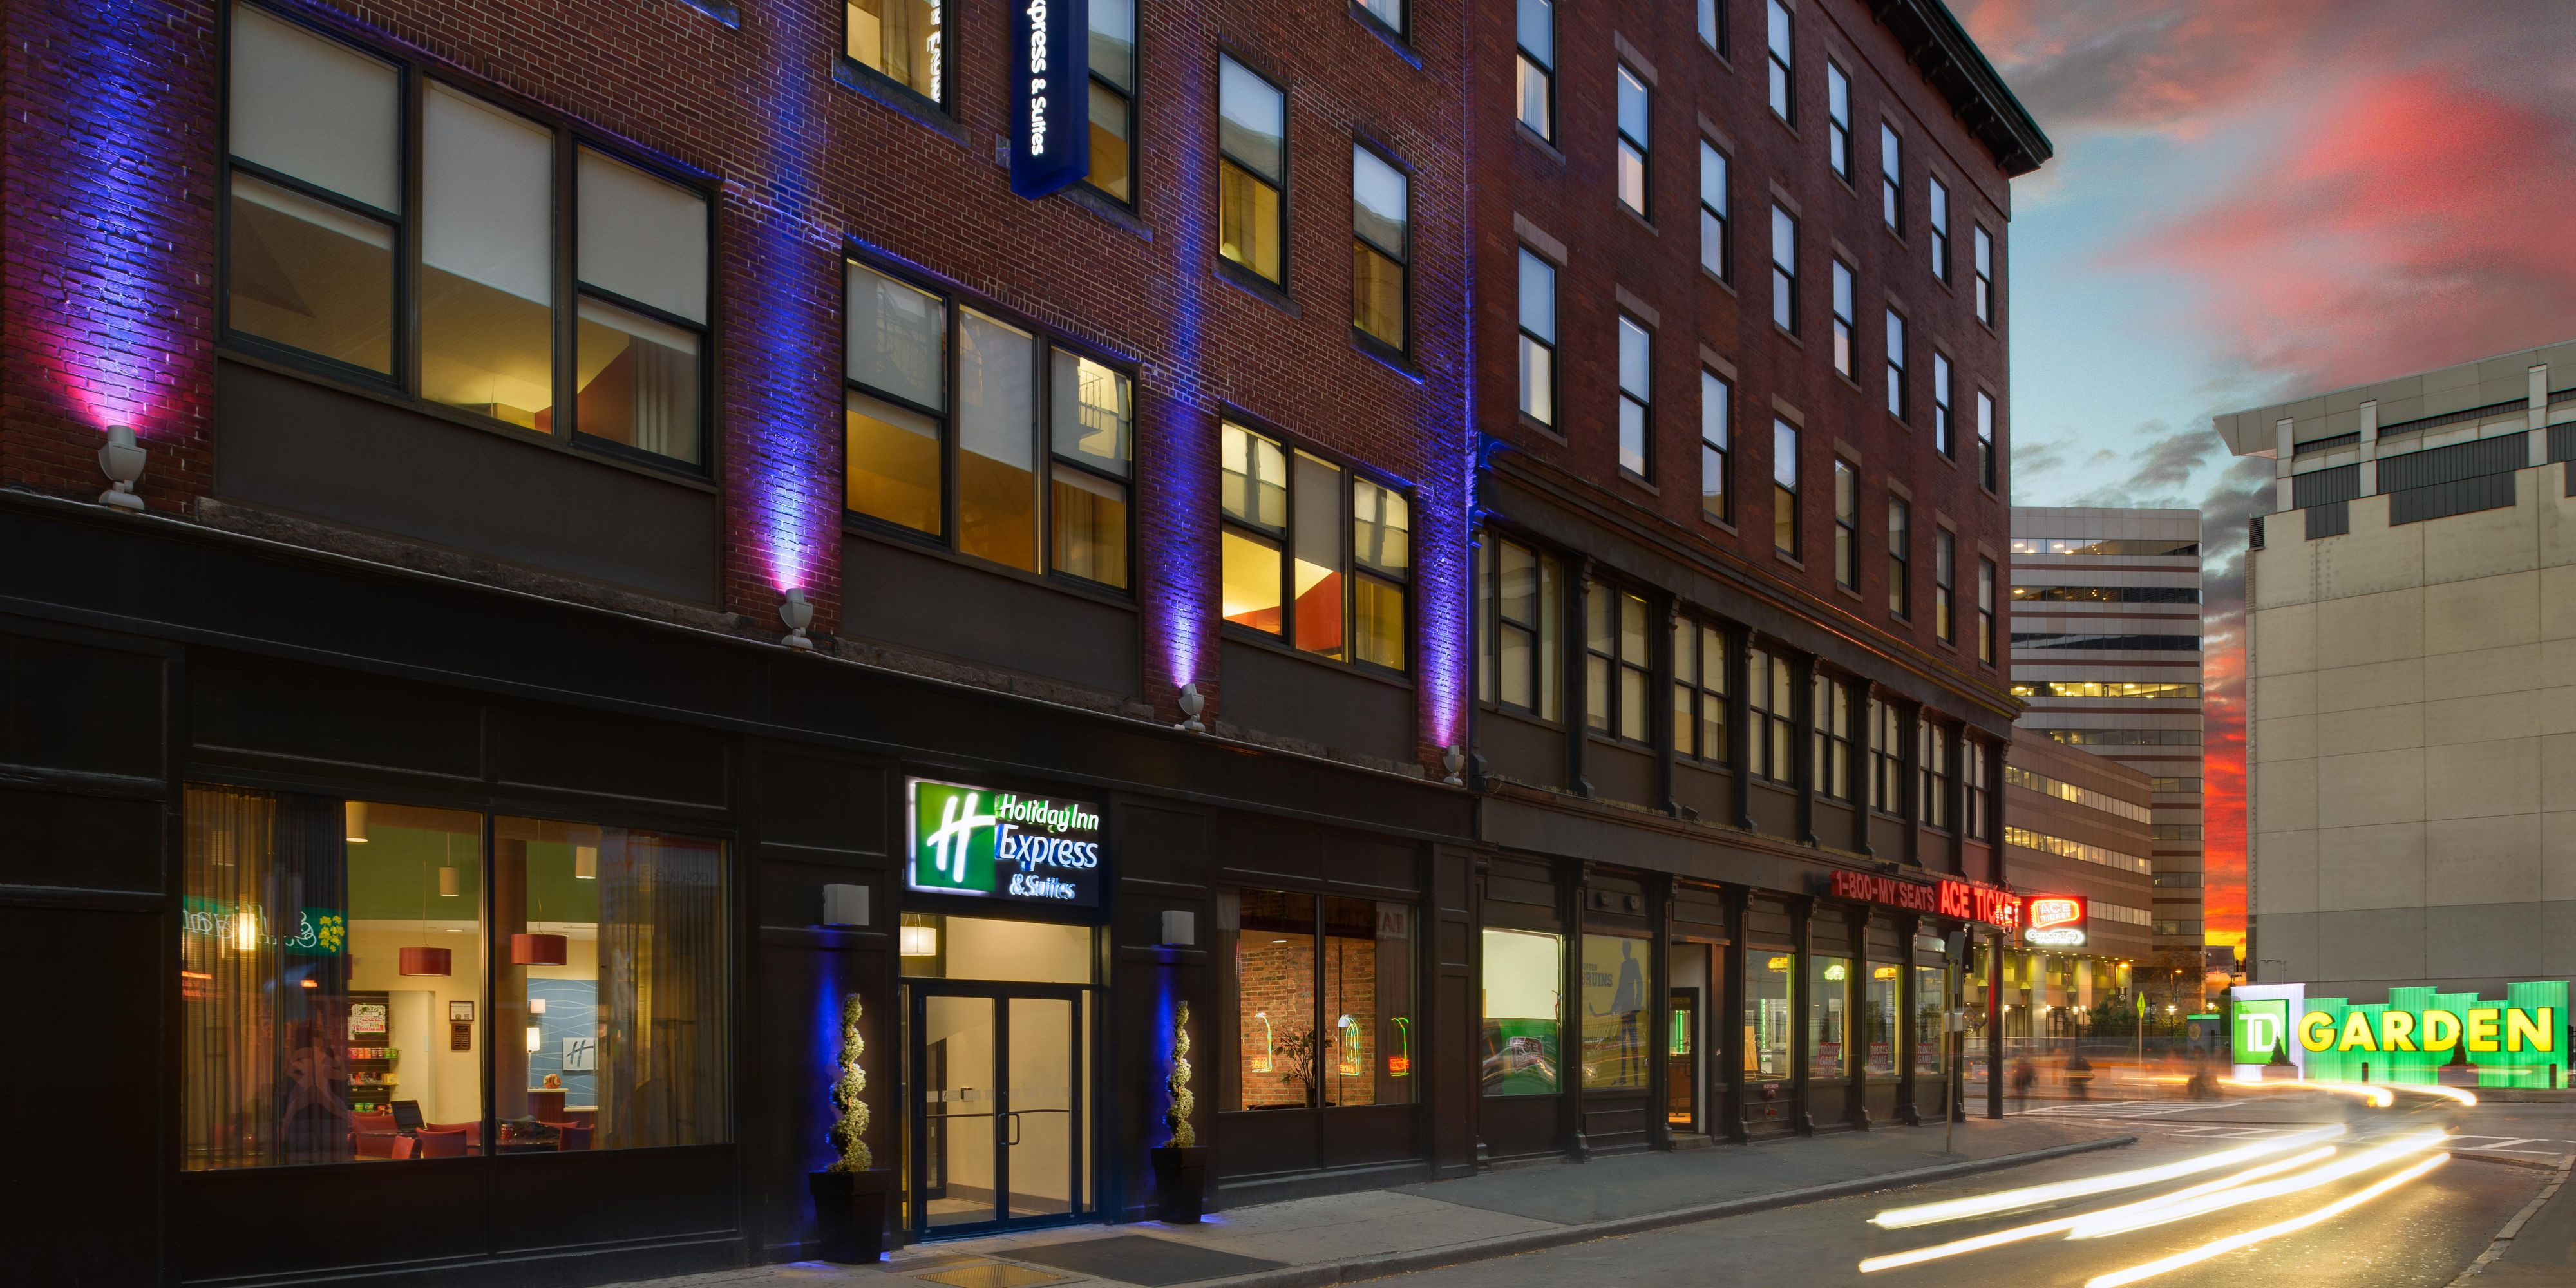 Holiday Inn Express Suites Boston Garden Hotel by IHG